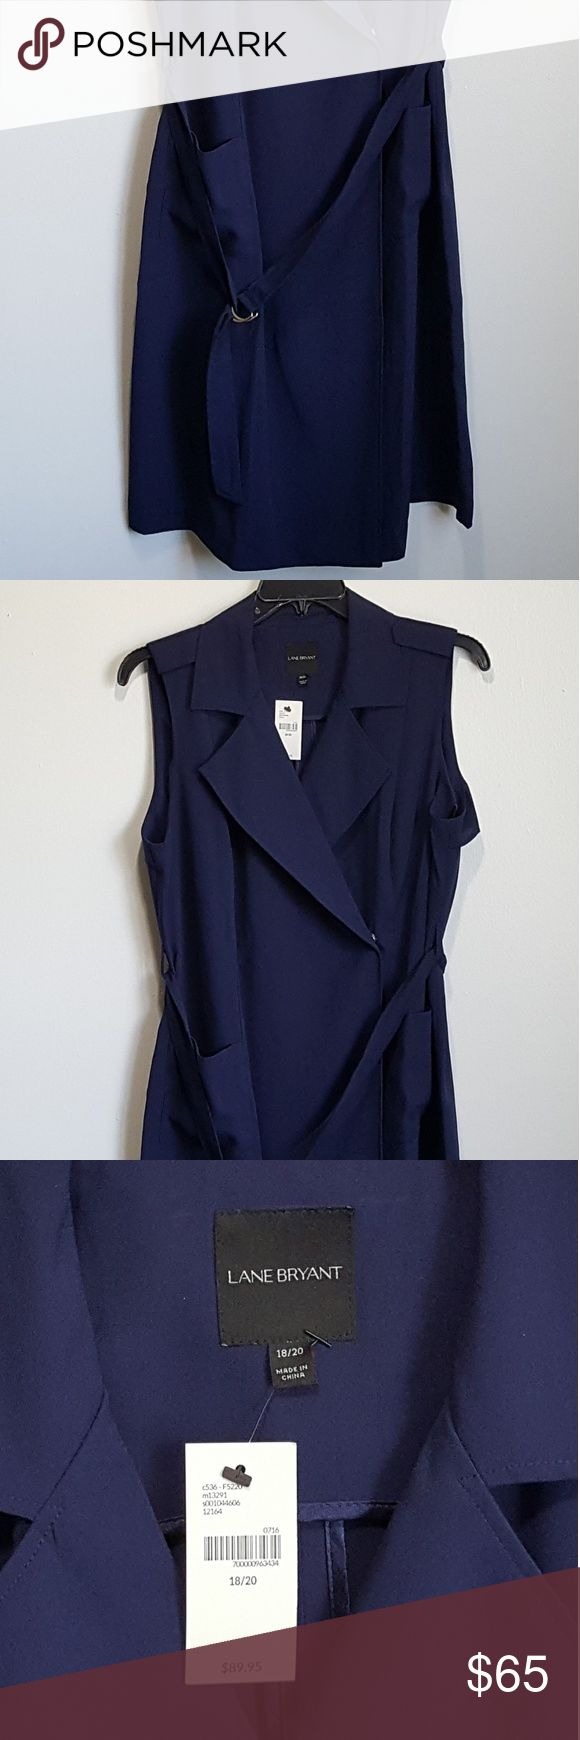 Lane Bryant Plus Size Sleeveless Trench Coat Woman's Lane Bryant Plus Size Sleeveless Trench Coat. New With Tags. Original Price: $89.95.  Color: Navy Blue  Size: 18/20  Condition: New With Tags  MAKE YOUR BEST OFFER!!! Lane Bryant Jackets & Coats Trench Coats